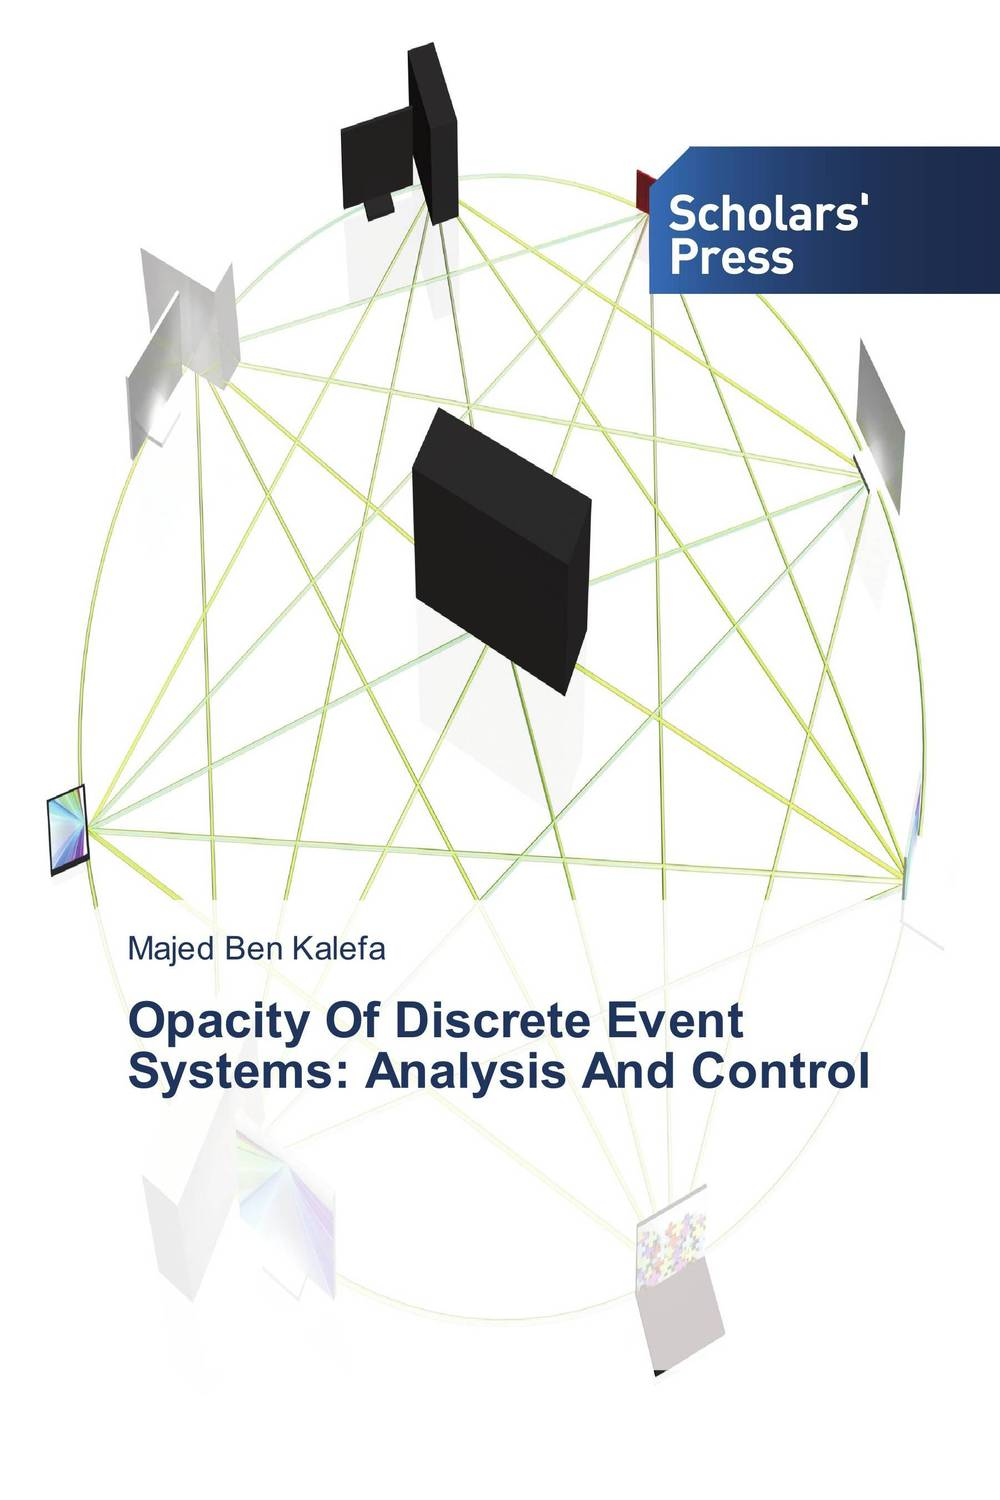 Opacity Of Discrete Event Systems: Analysis And Control belousov a security features of banknotes and other documents methods of authentication manual денежные билеты бланки ценных бумаг и документов